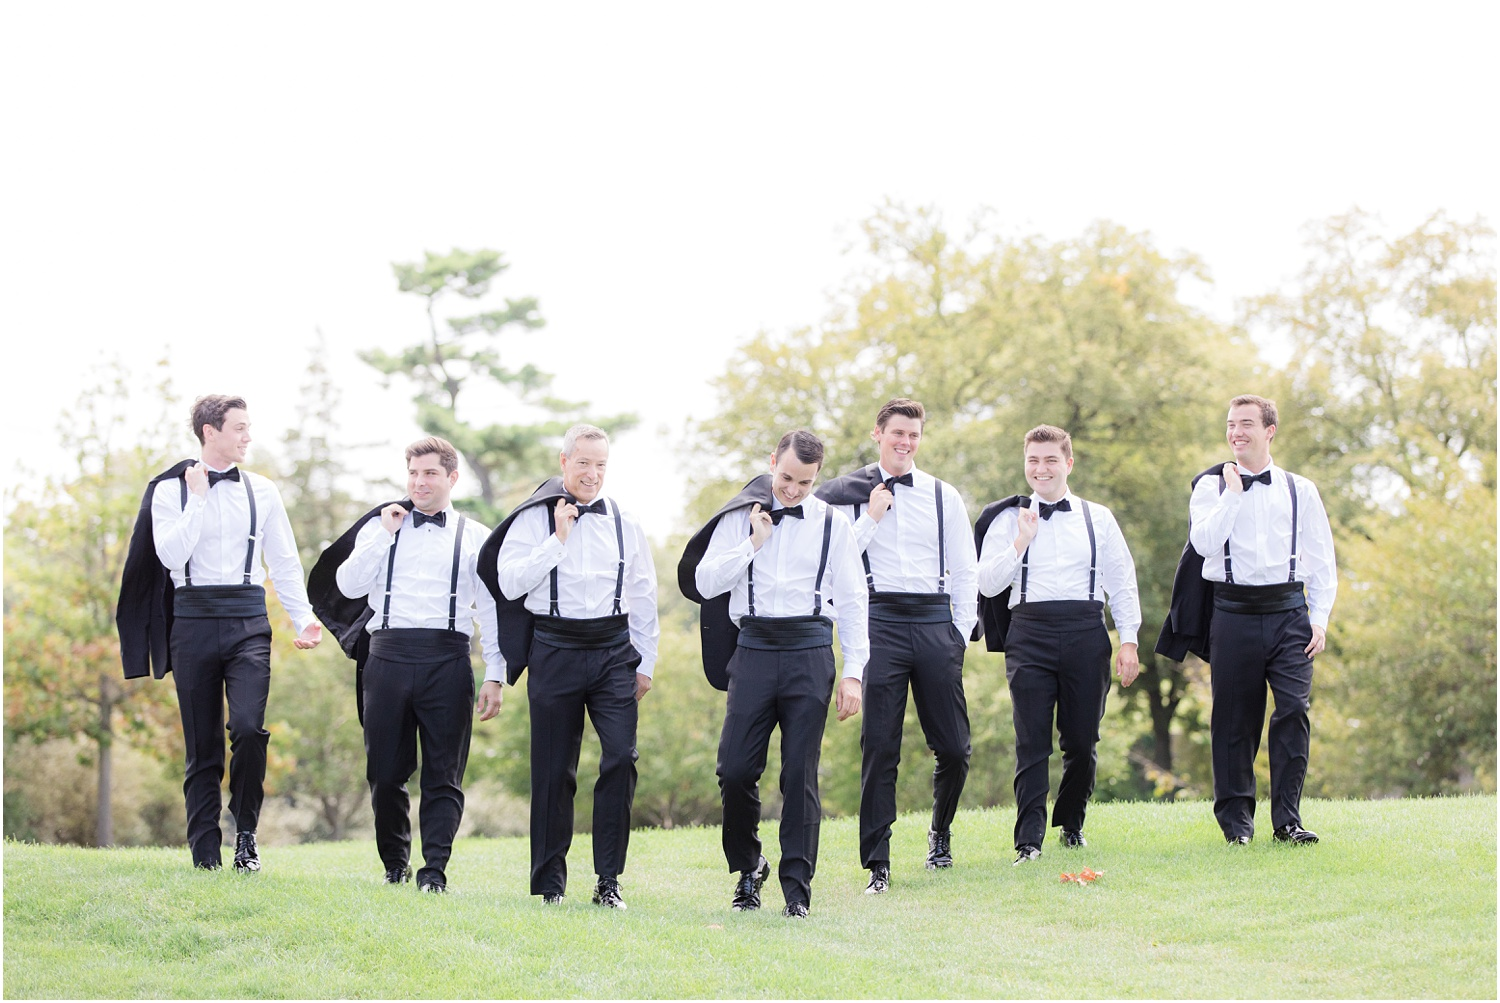 Groomsmen walking on the golf course at Canoe Brook Country Club